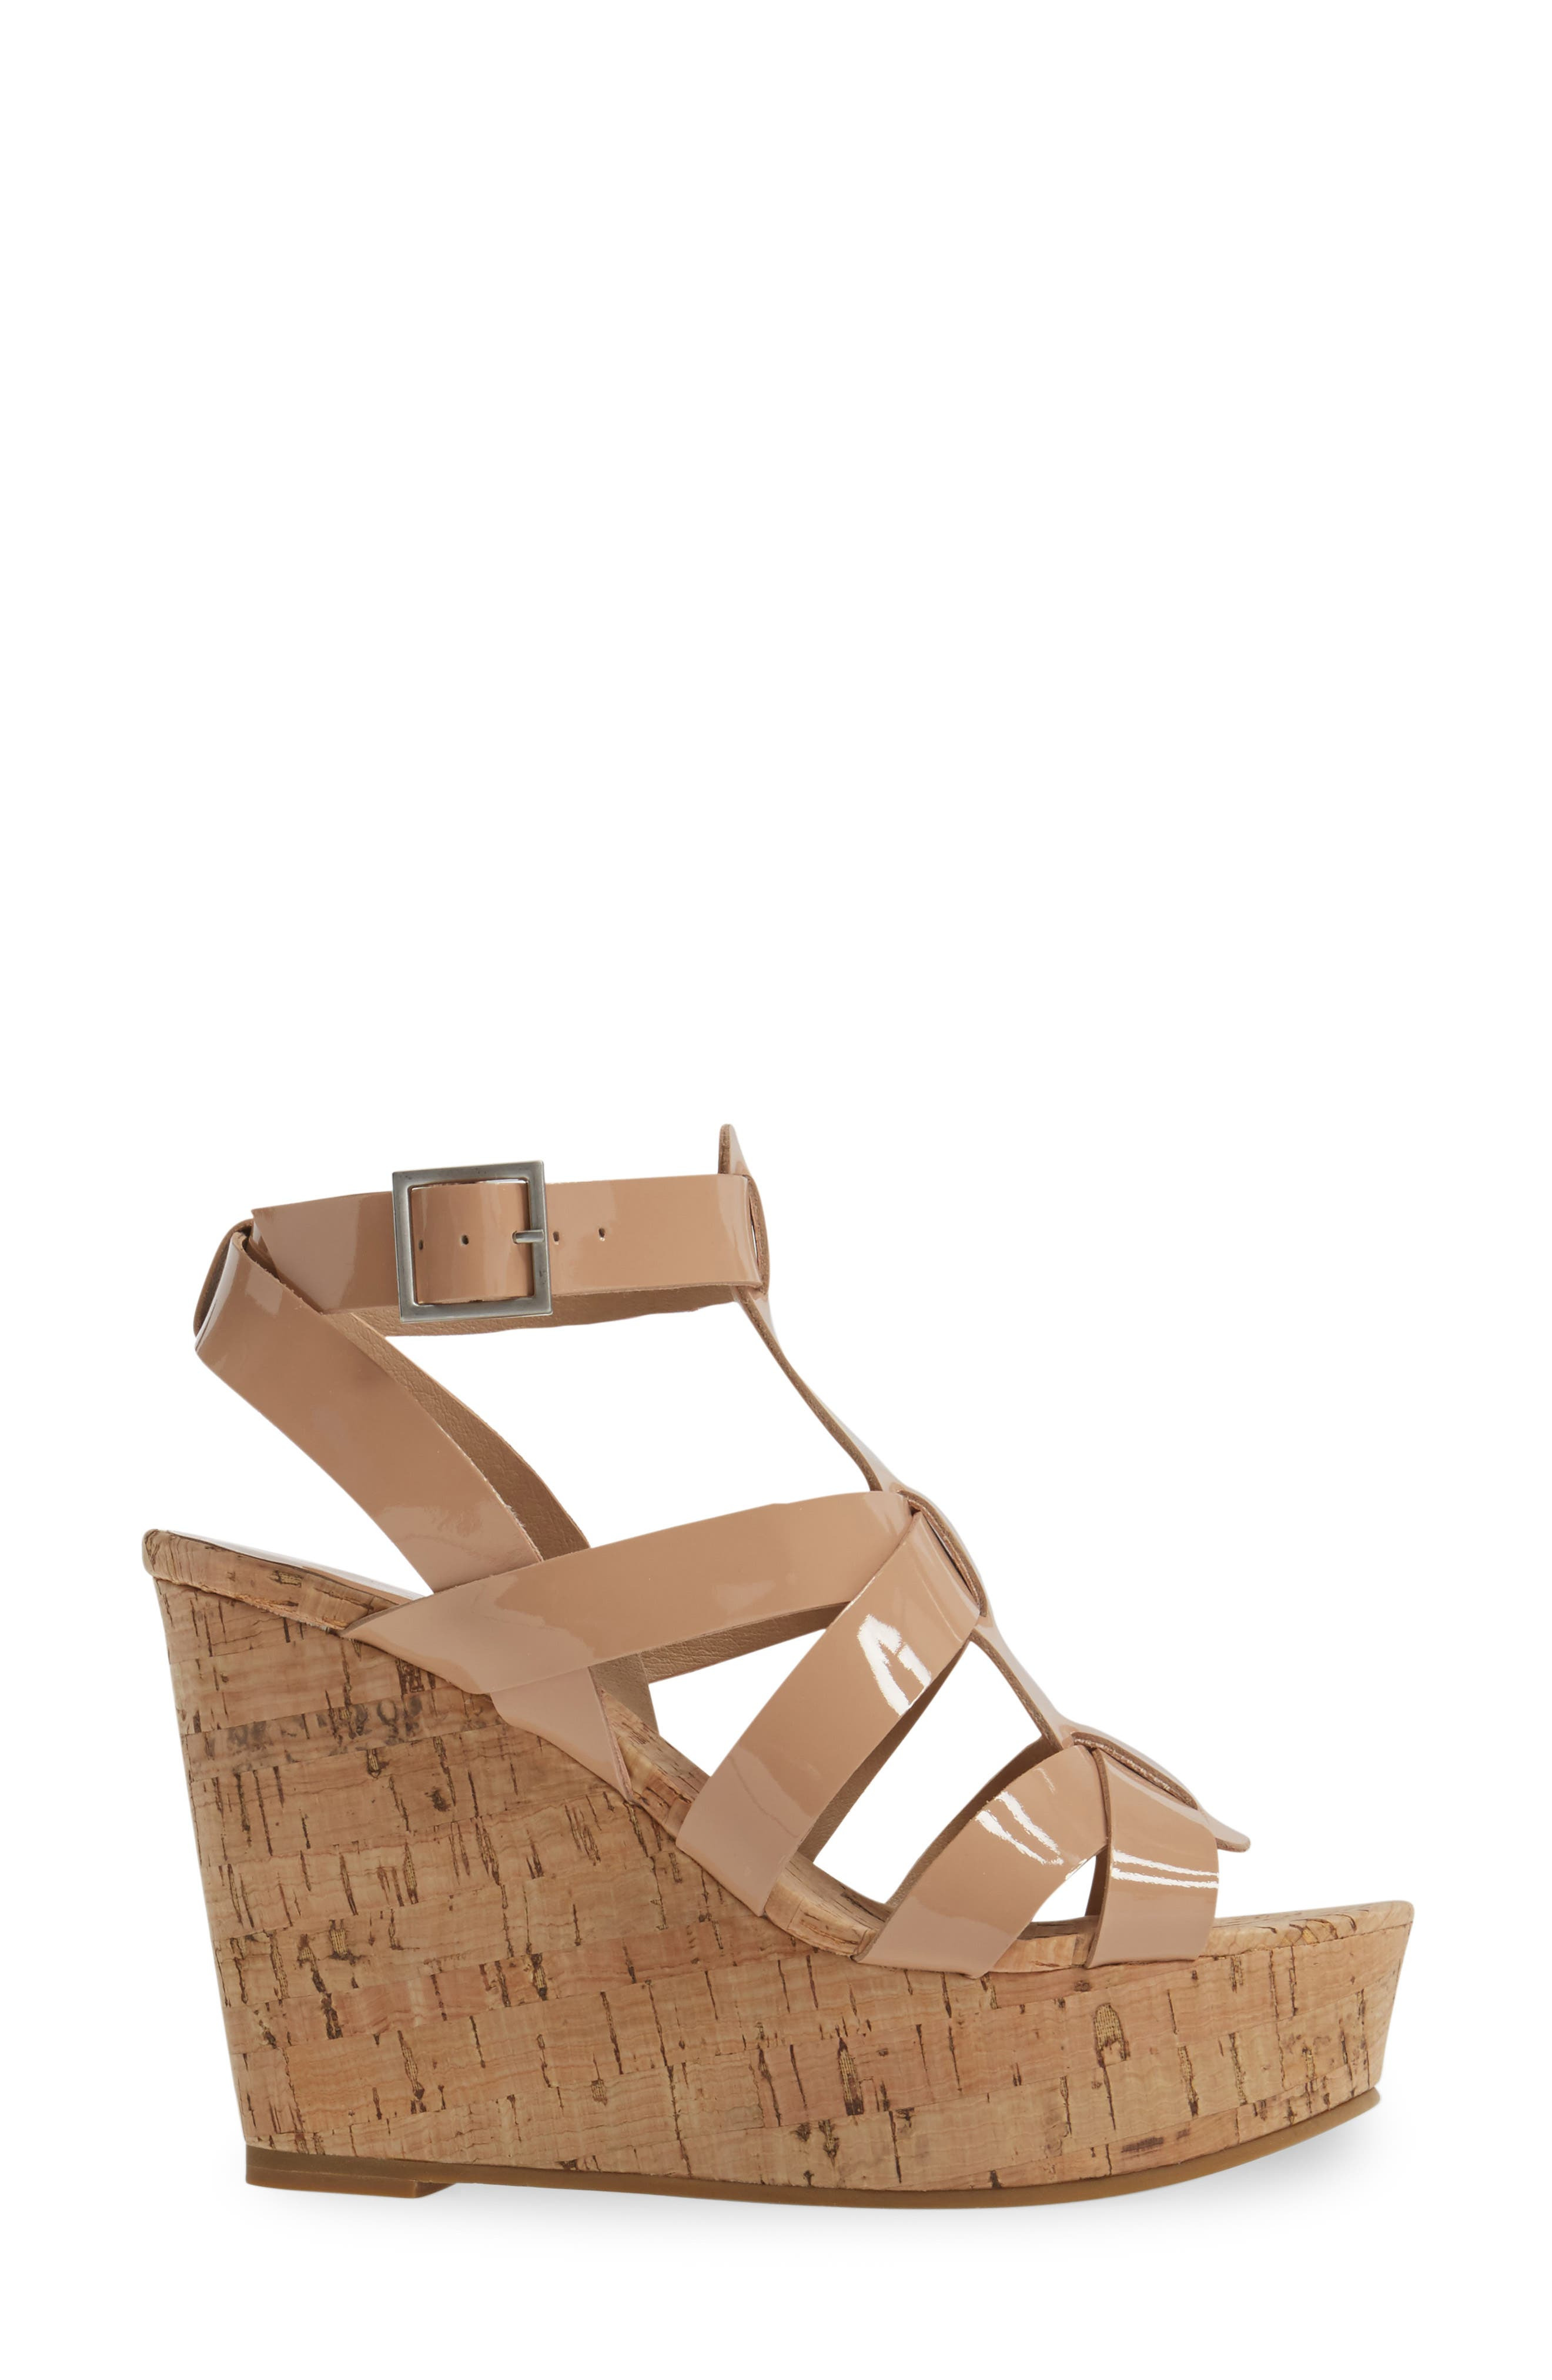 Rayjay Wedge Sandal,                             Alternate thumbnail 3, color,                             Blush Leather